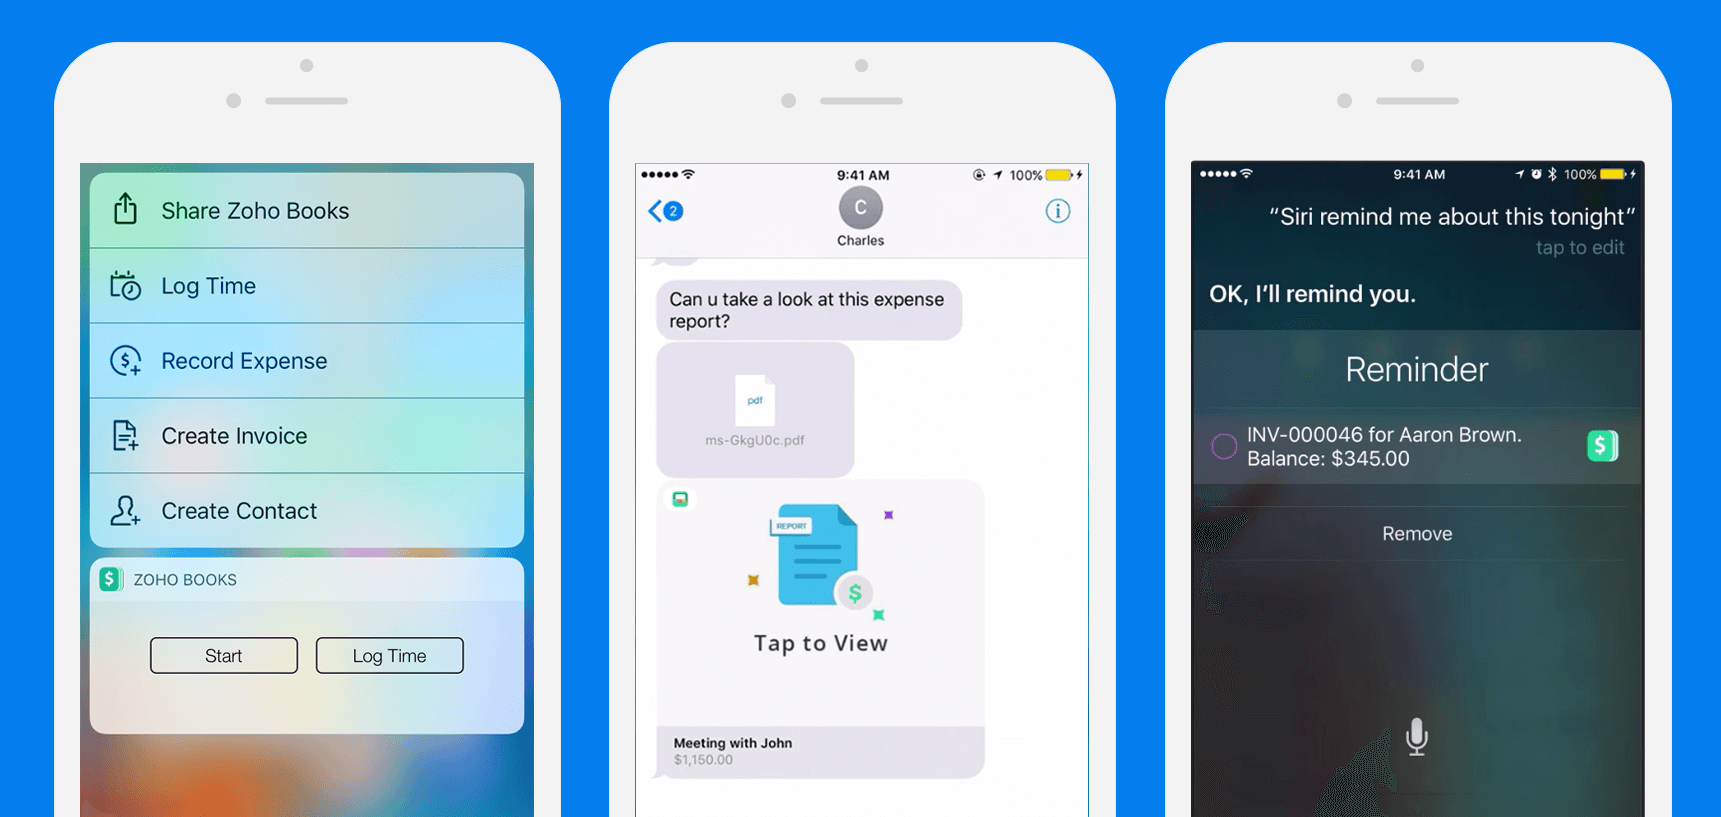 Finance, meet iMessage. Payments, approvals, and reminders, all through iOS 10.